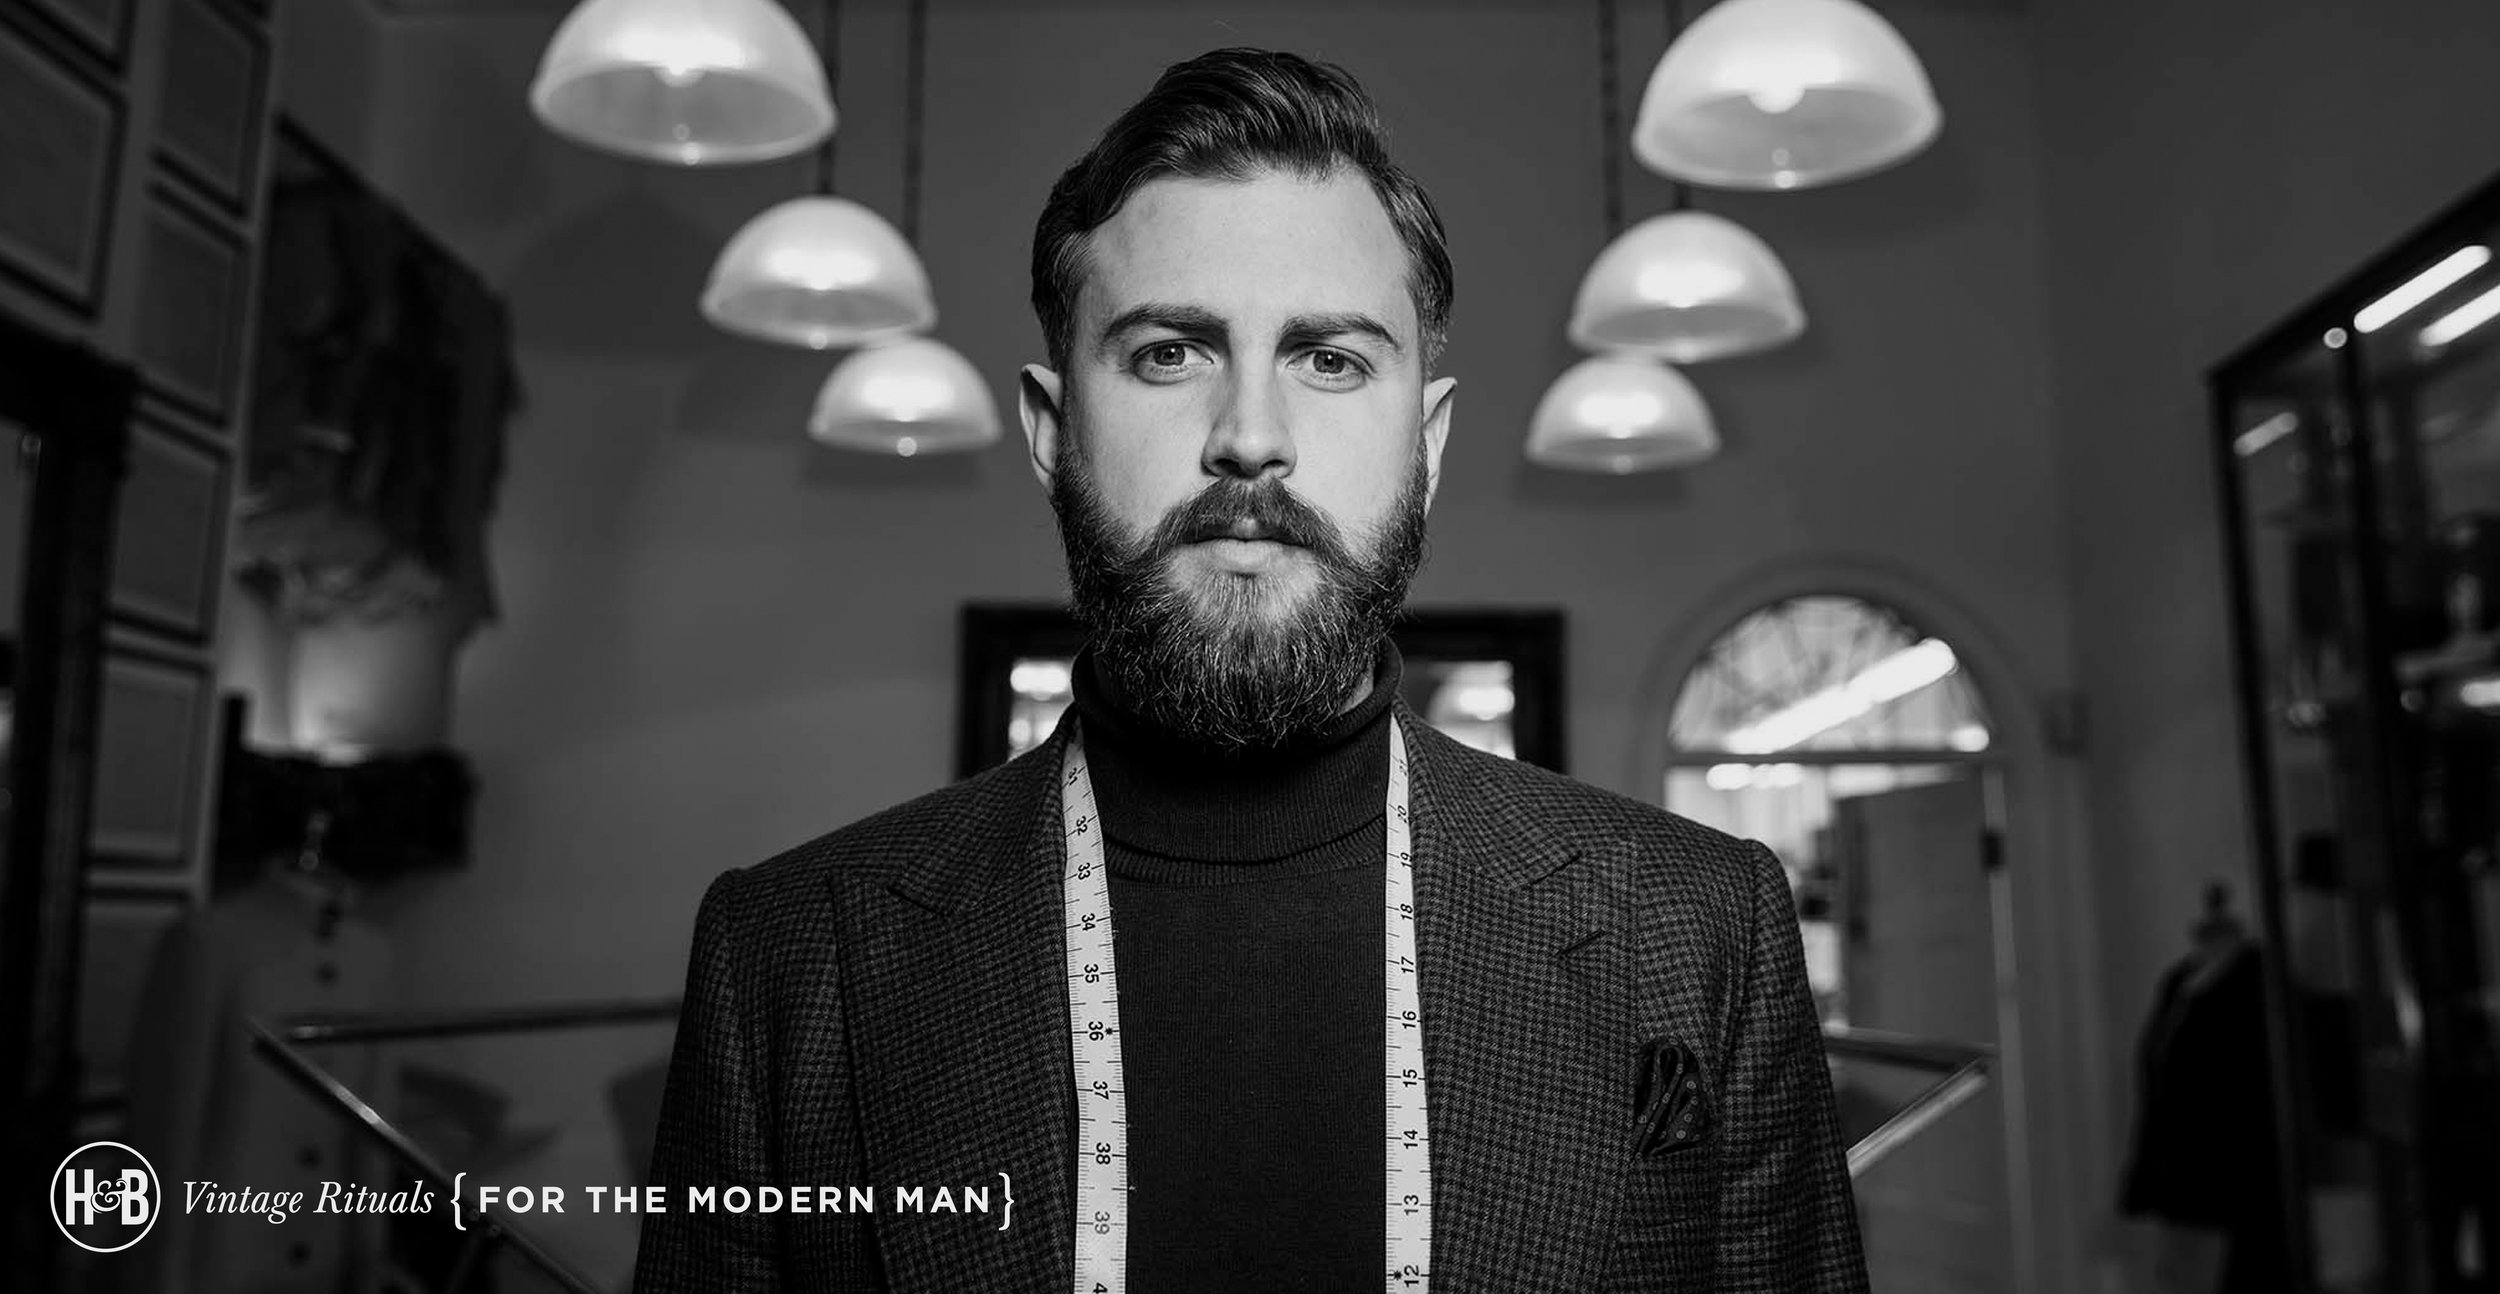 Launching a male grooming brand - Vintage Rituals for the Modern Man